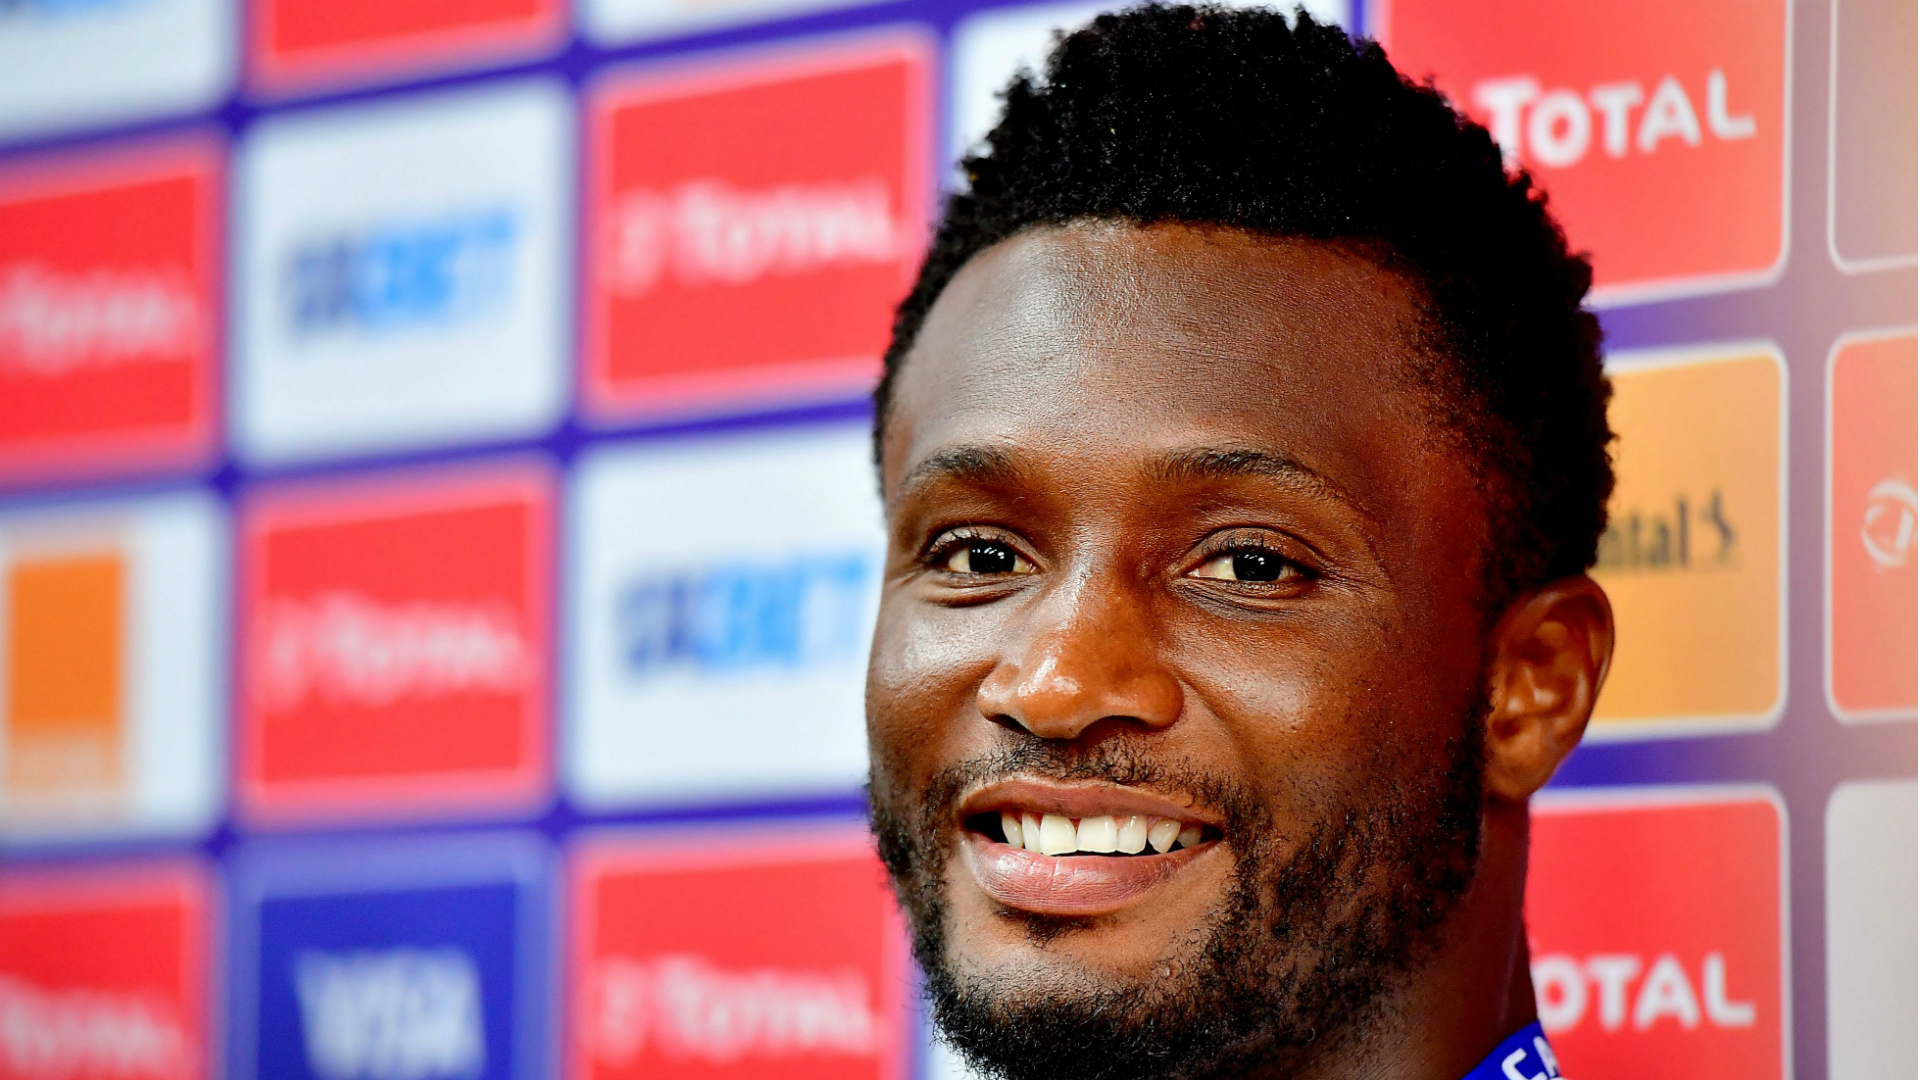 'Titles are not won in the grave' – Pascal backs Mikel's Trabzonspor exit decision